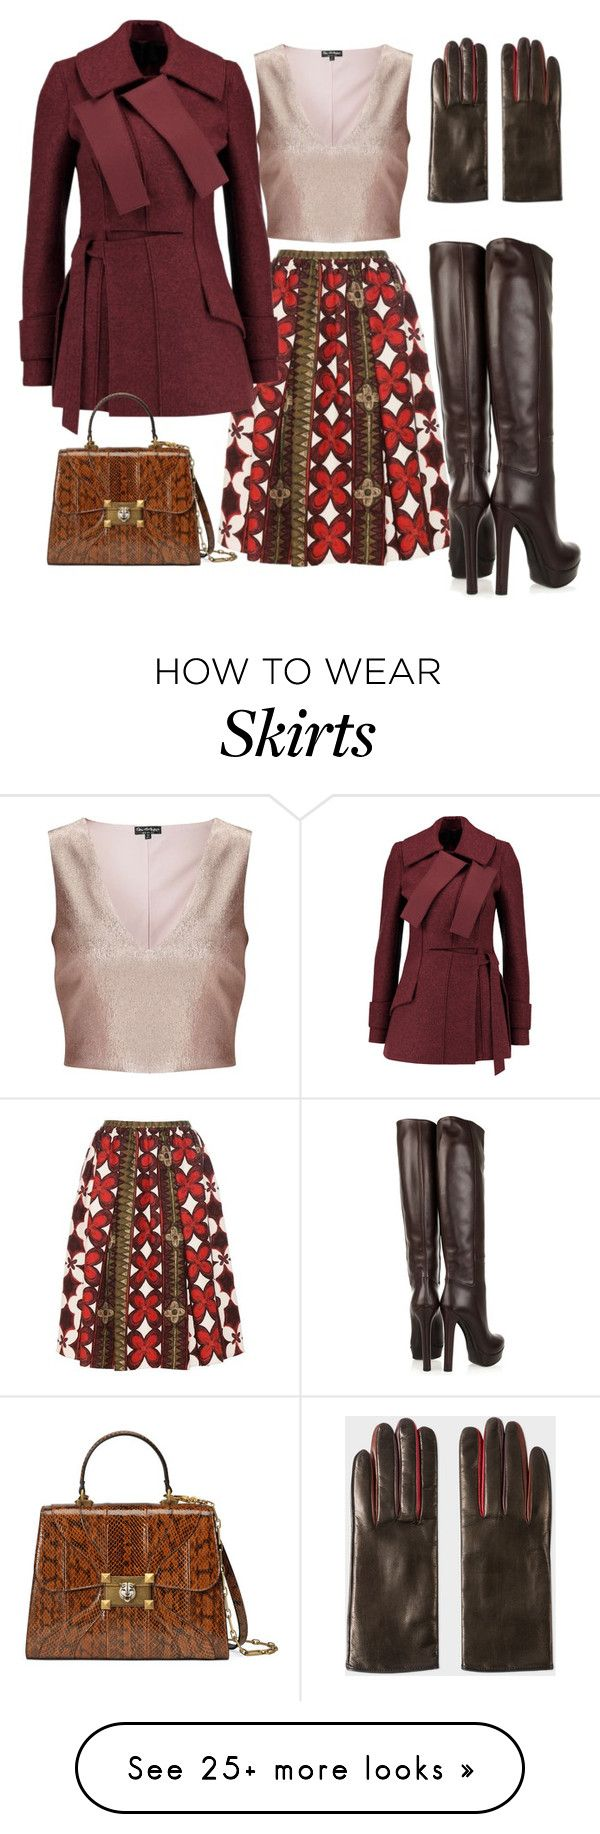 """Winter Wine"" by micha-love on Polyvore featuring Valentino, Miss Selfridge, Proenza Schouler, Gucci and Paul Smith"